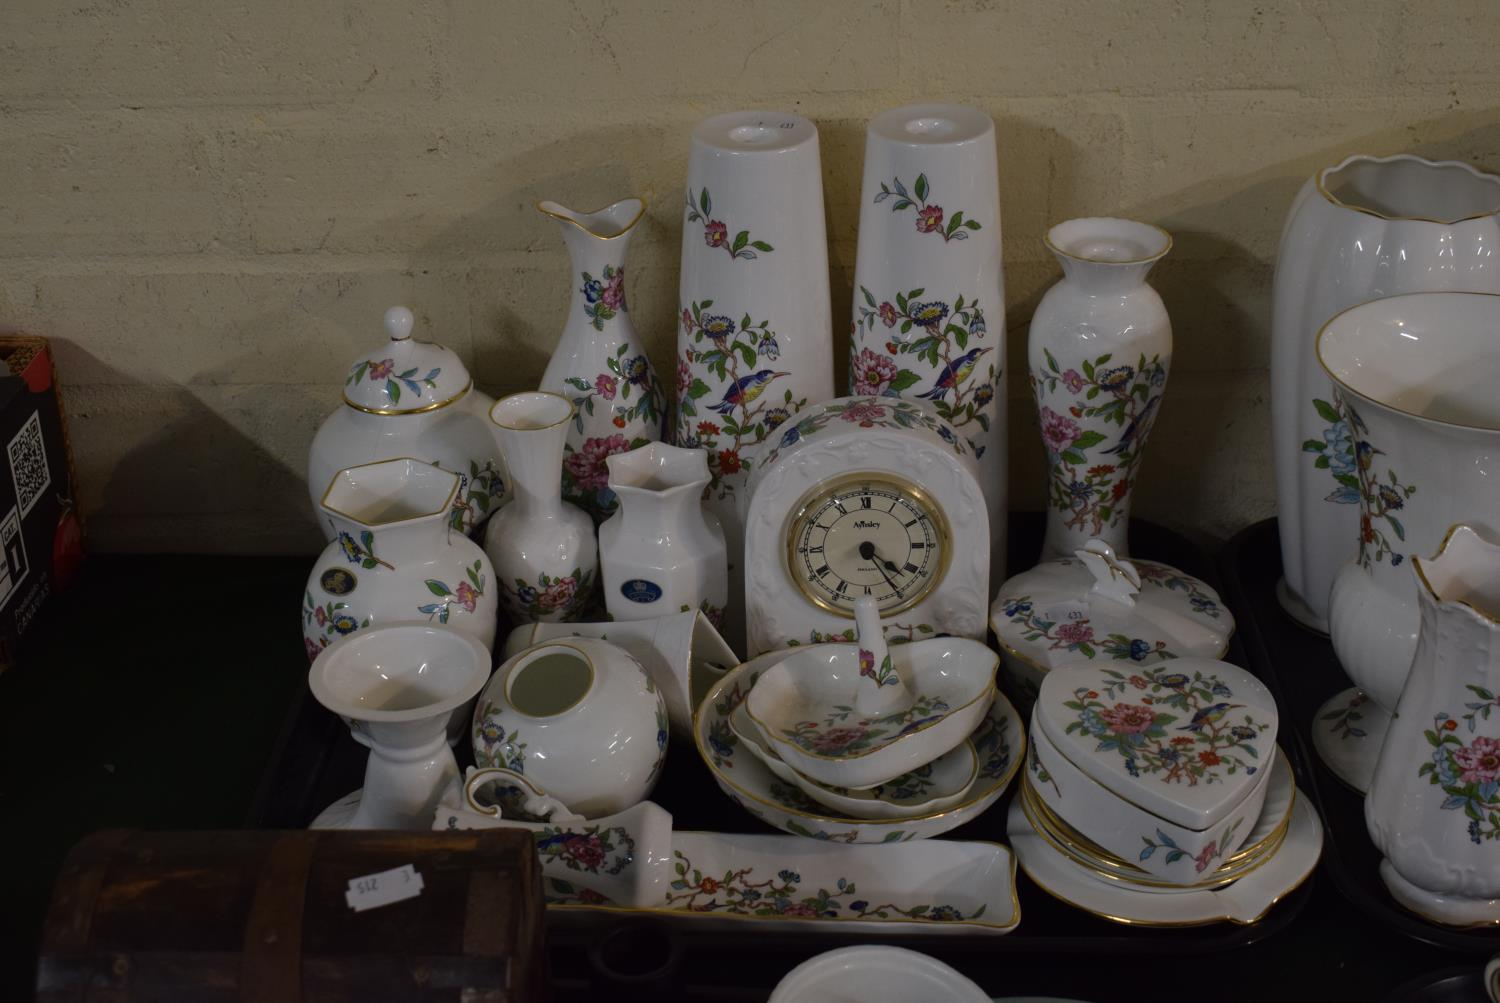 Lot 215 - A Tray Containing Large Quantity of Aynsley Pembroke Items to Include Mantle Clock, Vases, Candle